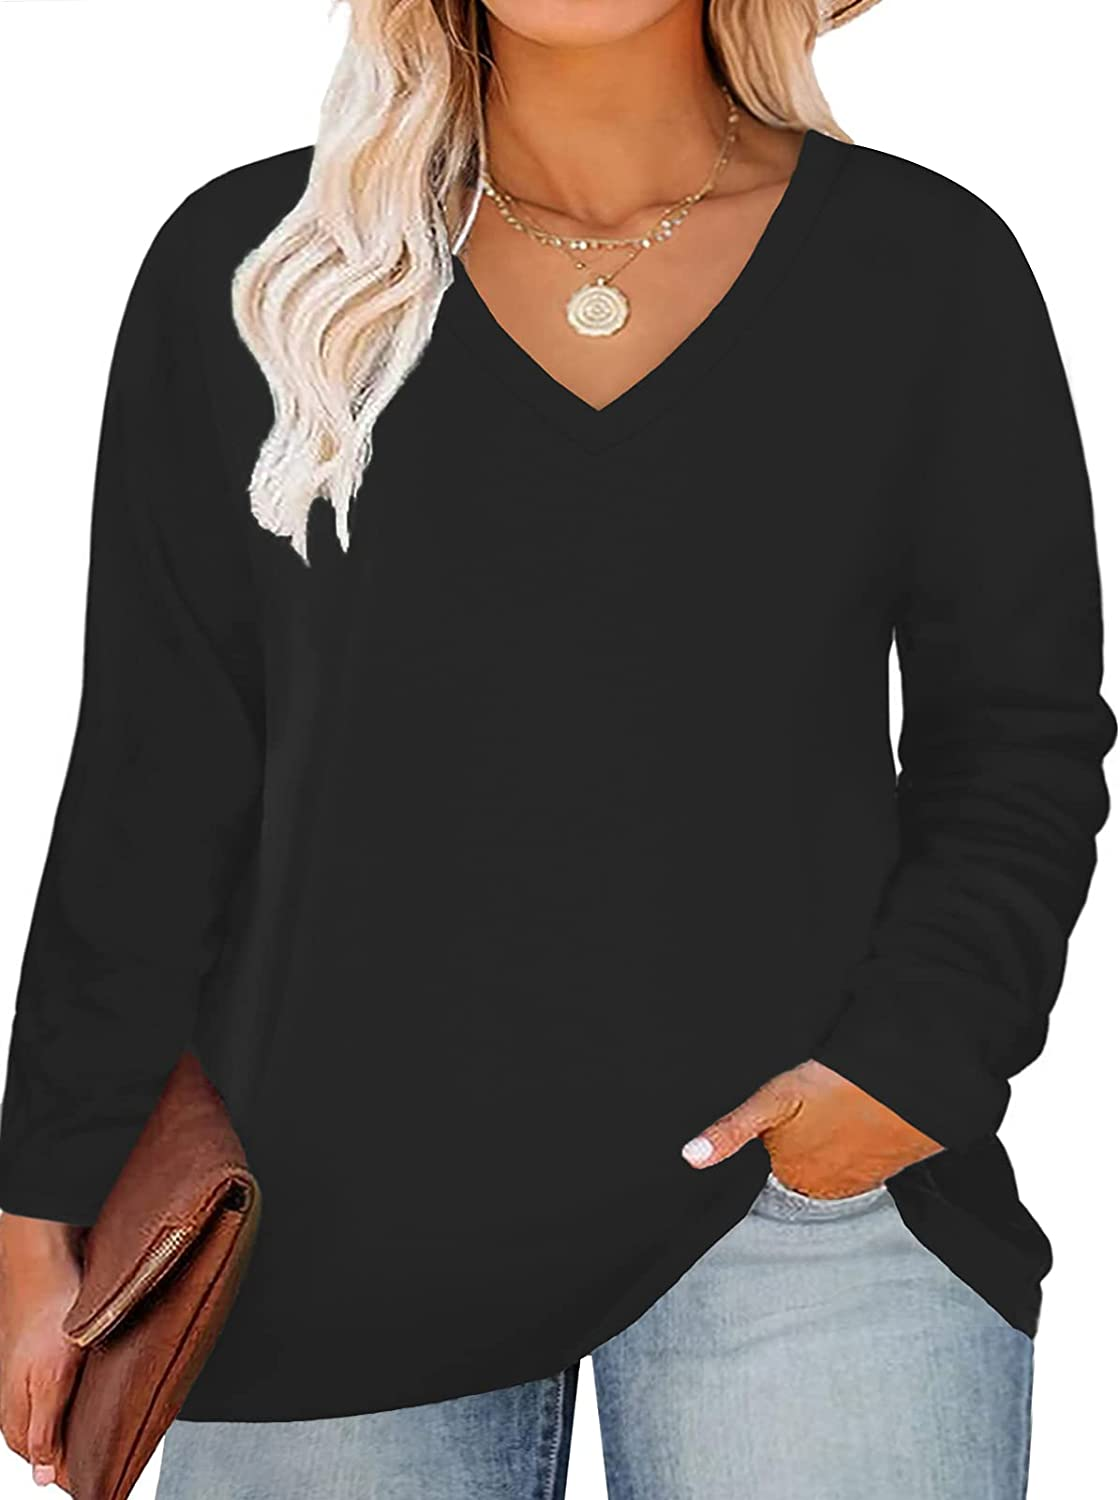 ROSRISS Plus Size New arrival Tops for Women Sleeve Spring new work Neck V Long Tees Tunics